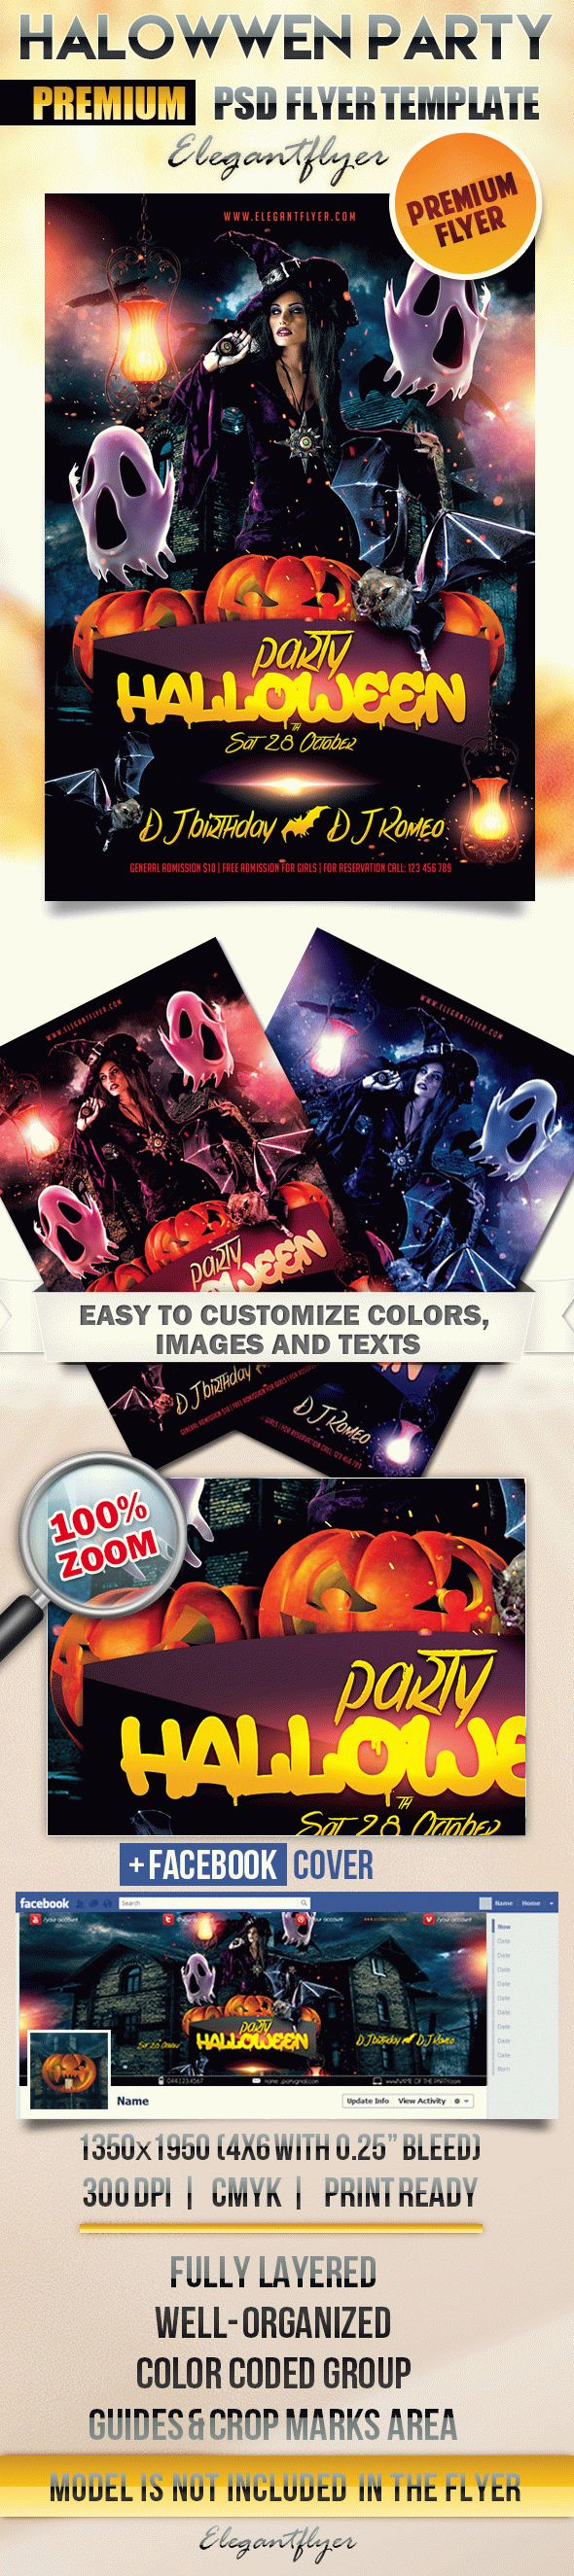 flyer for witch themed halloween party  u2013 by elegantflyer